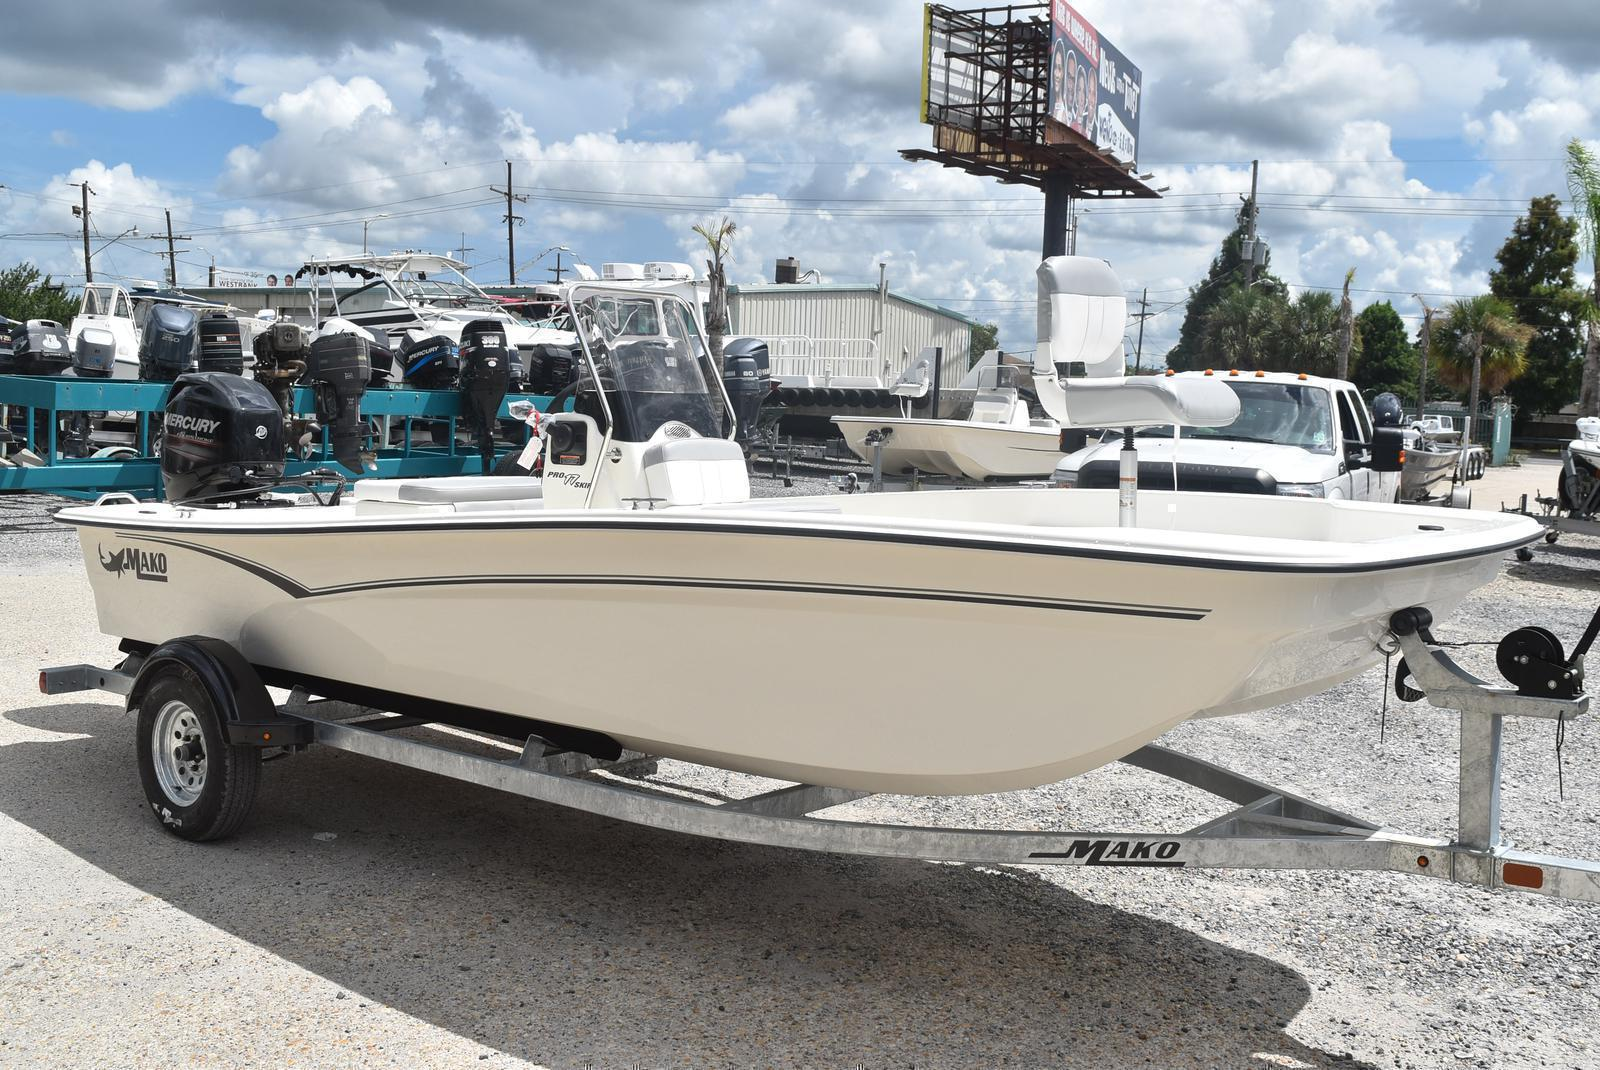 2020 Mako boat for sale, model of the boat is Pro Skiff 17, 75 ELPT & Image # 692 of 702